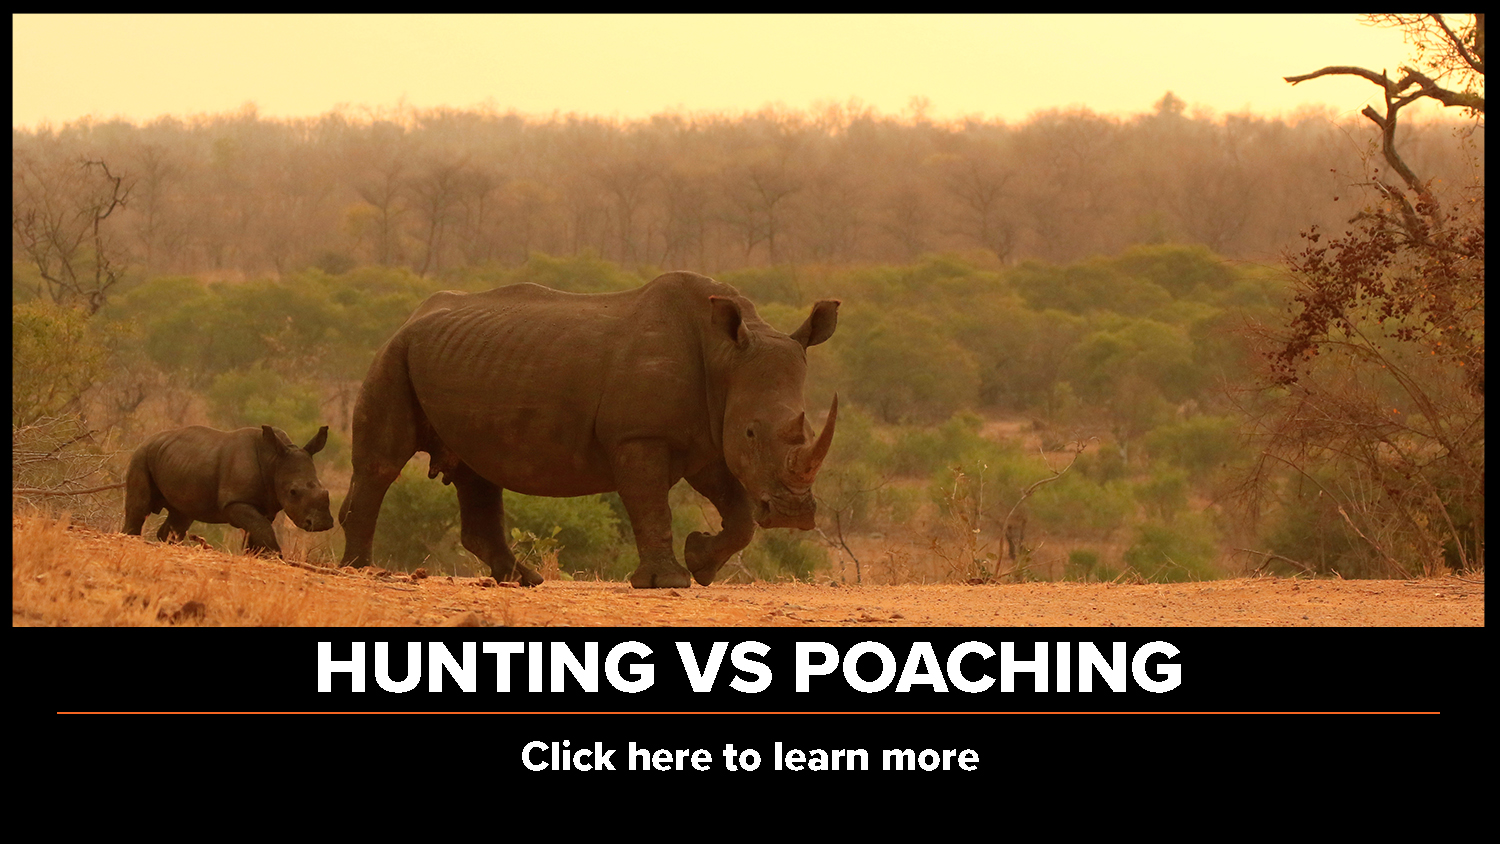 Hunting vs. Poaching